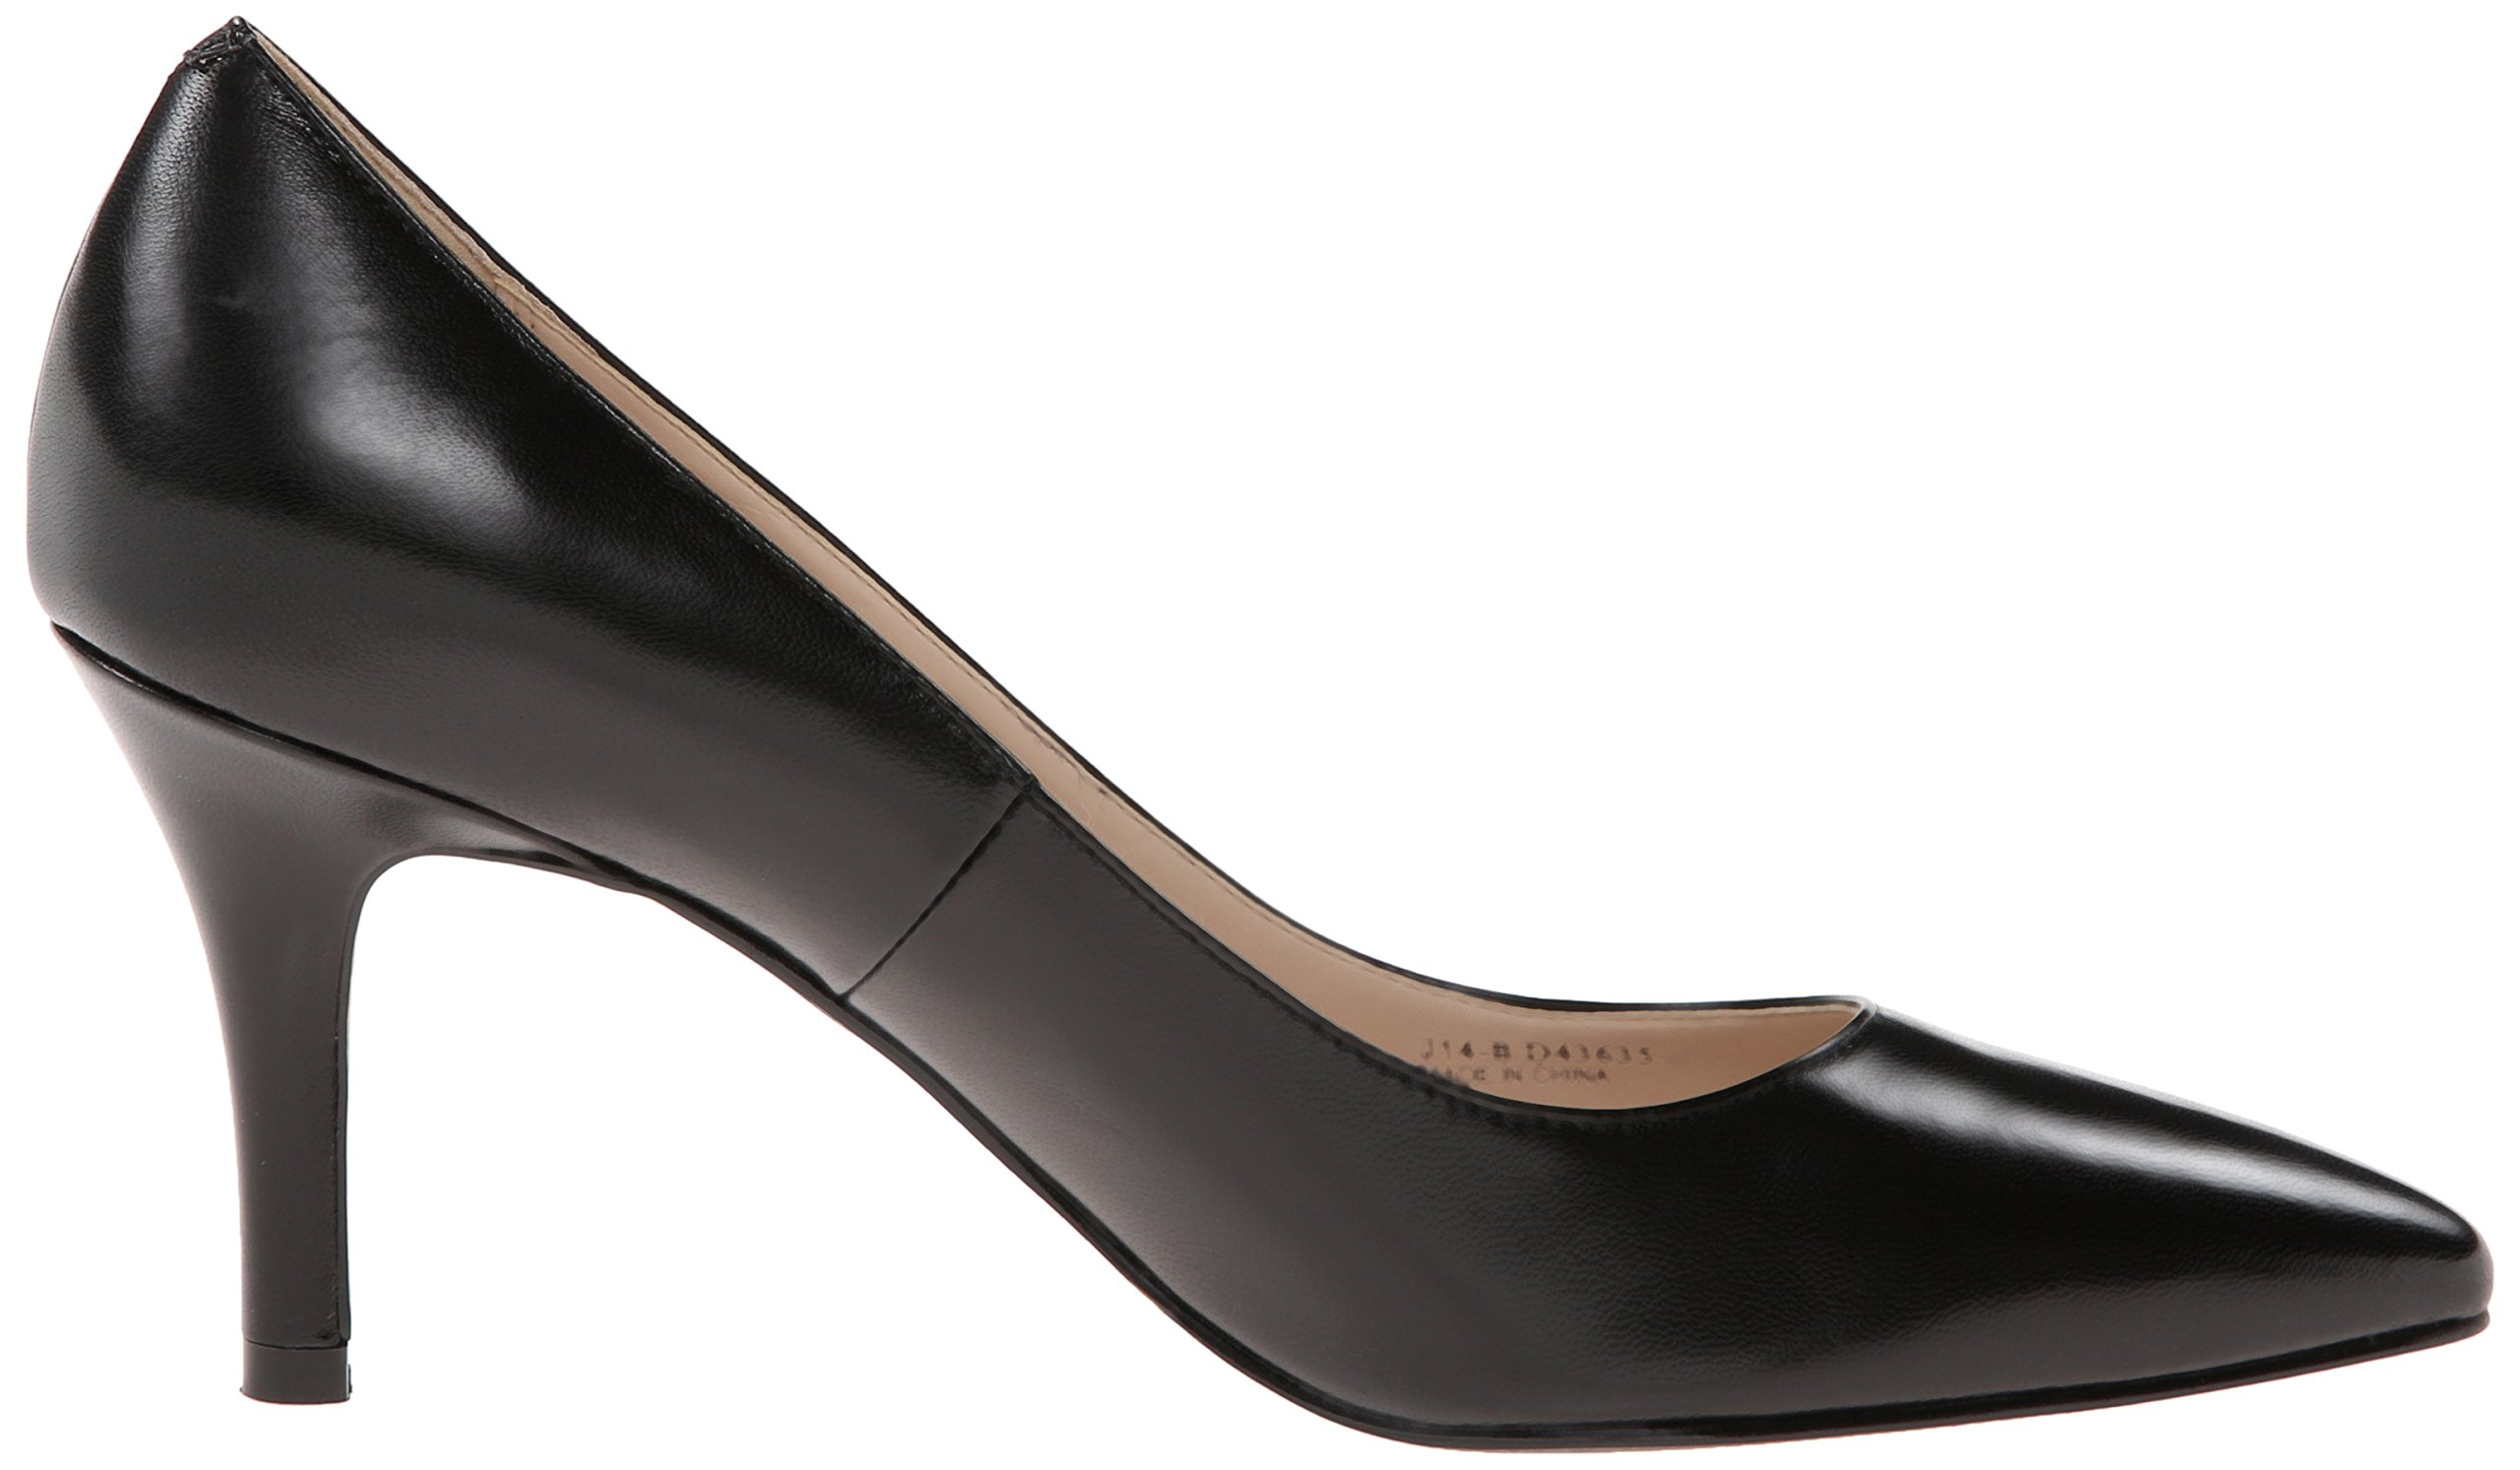 Cole Haan Women's Juliana Pump 75,Black Leather,8.5  B US by Cole Haan (Image #7)